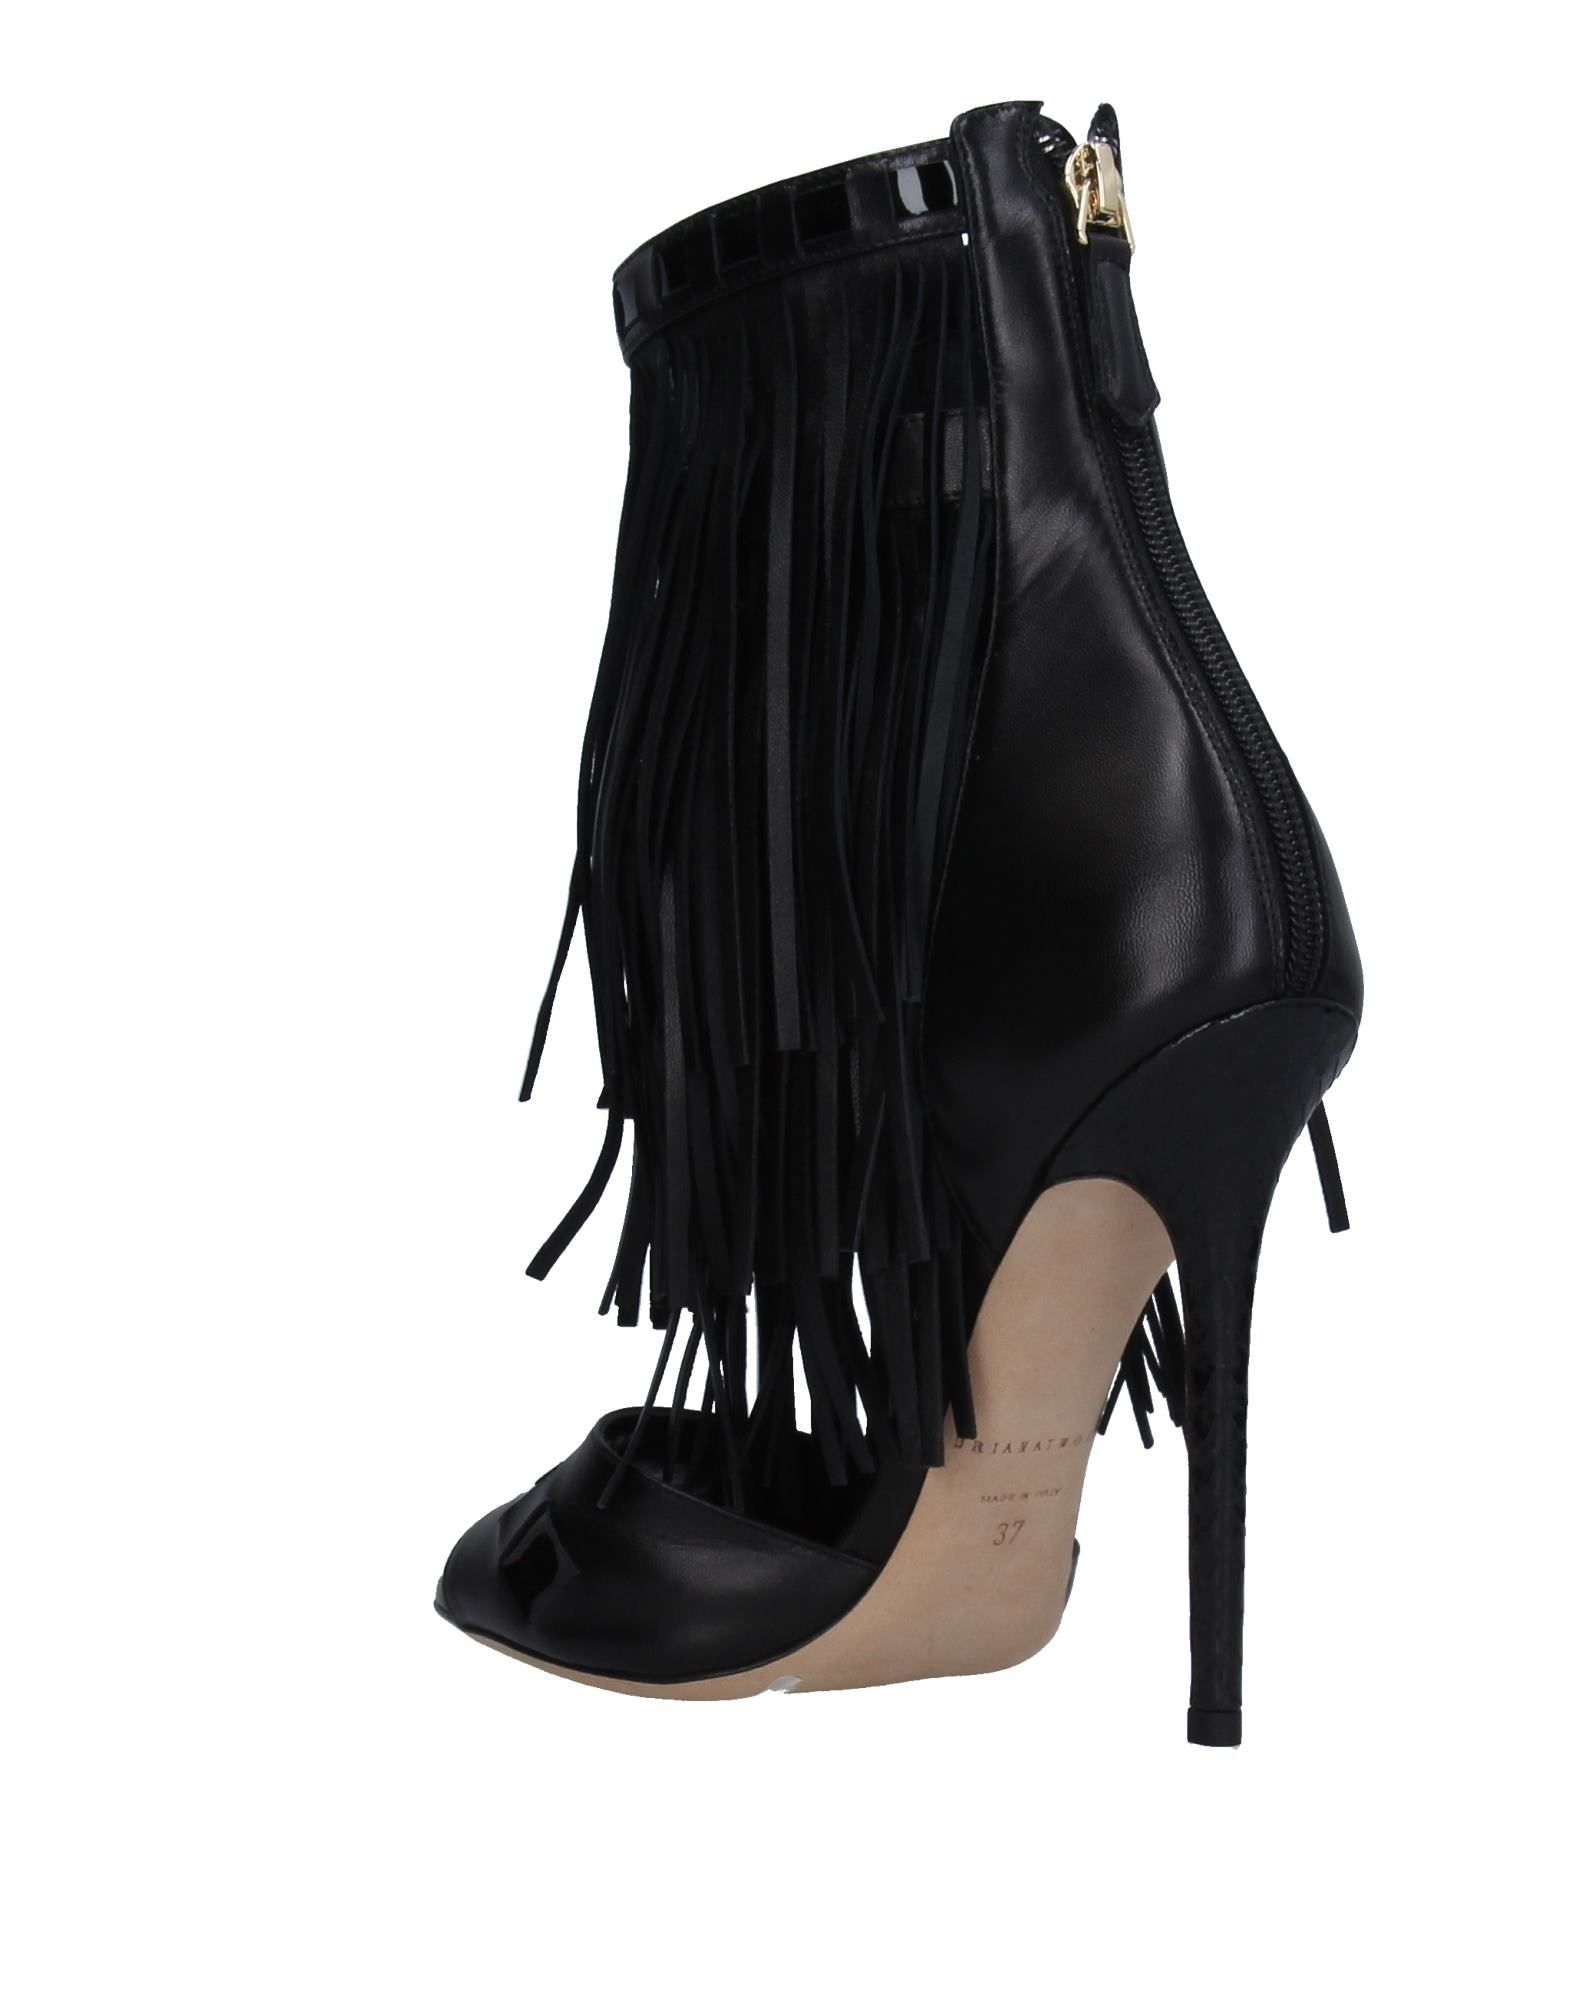 Sandales Brian Atwood Femme - Sandales Brian Atwood sur